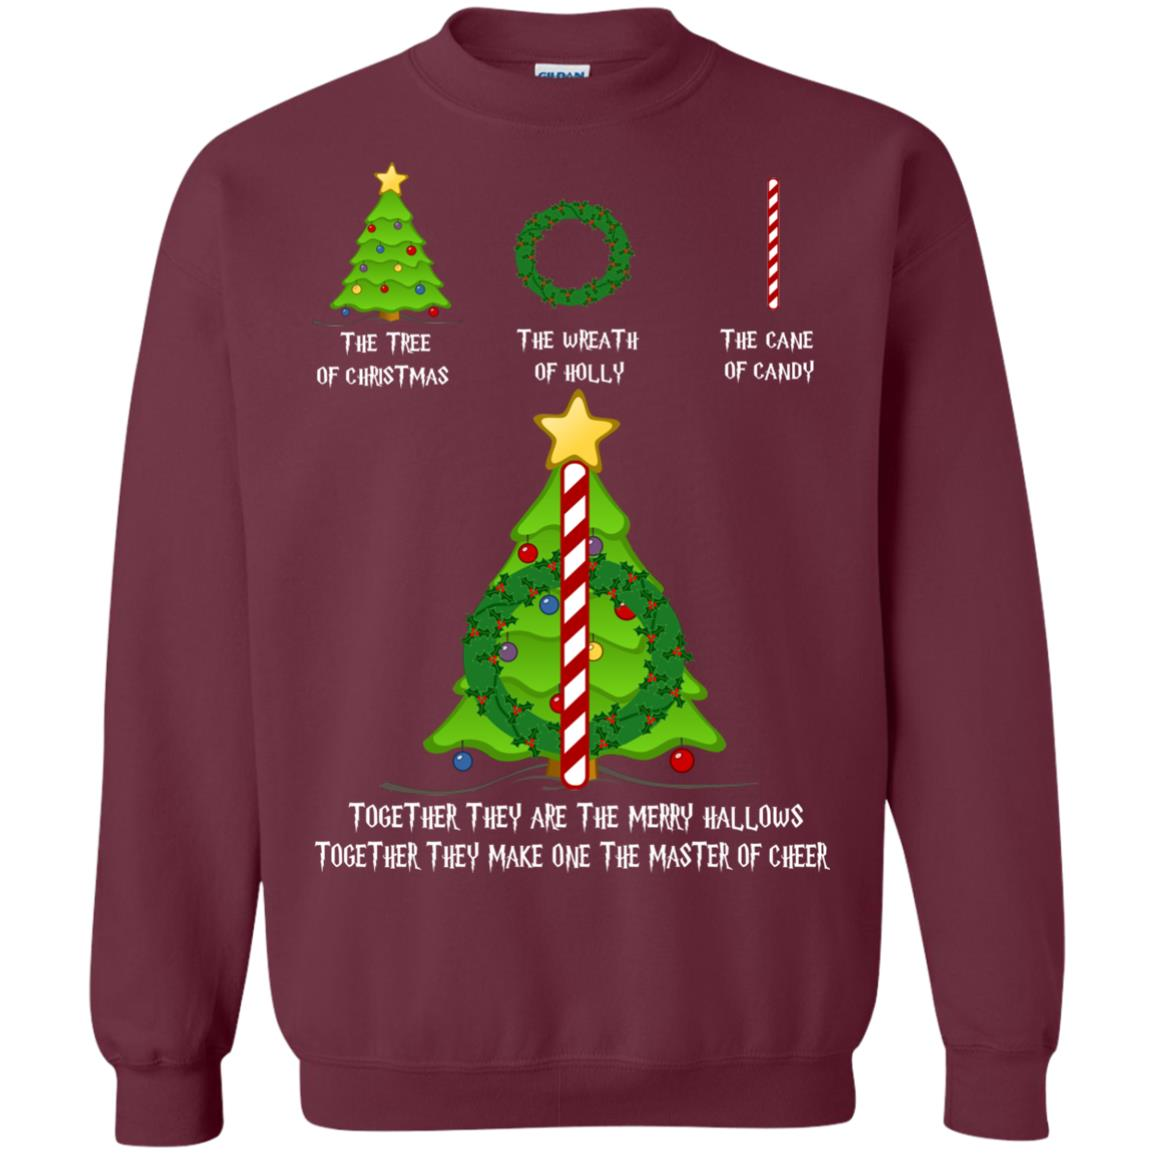 image 368px Harry Potter: The Tree Of Christmas The Wreath of Holly The Cane Of Candy Sweater